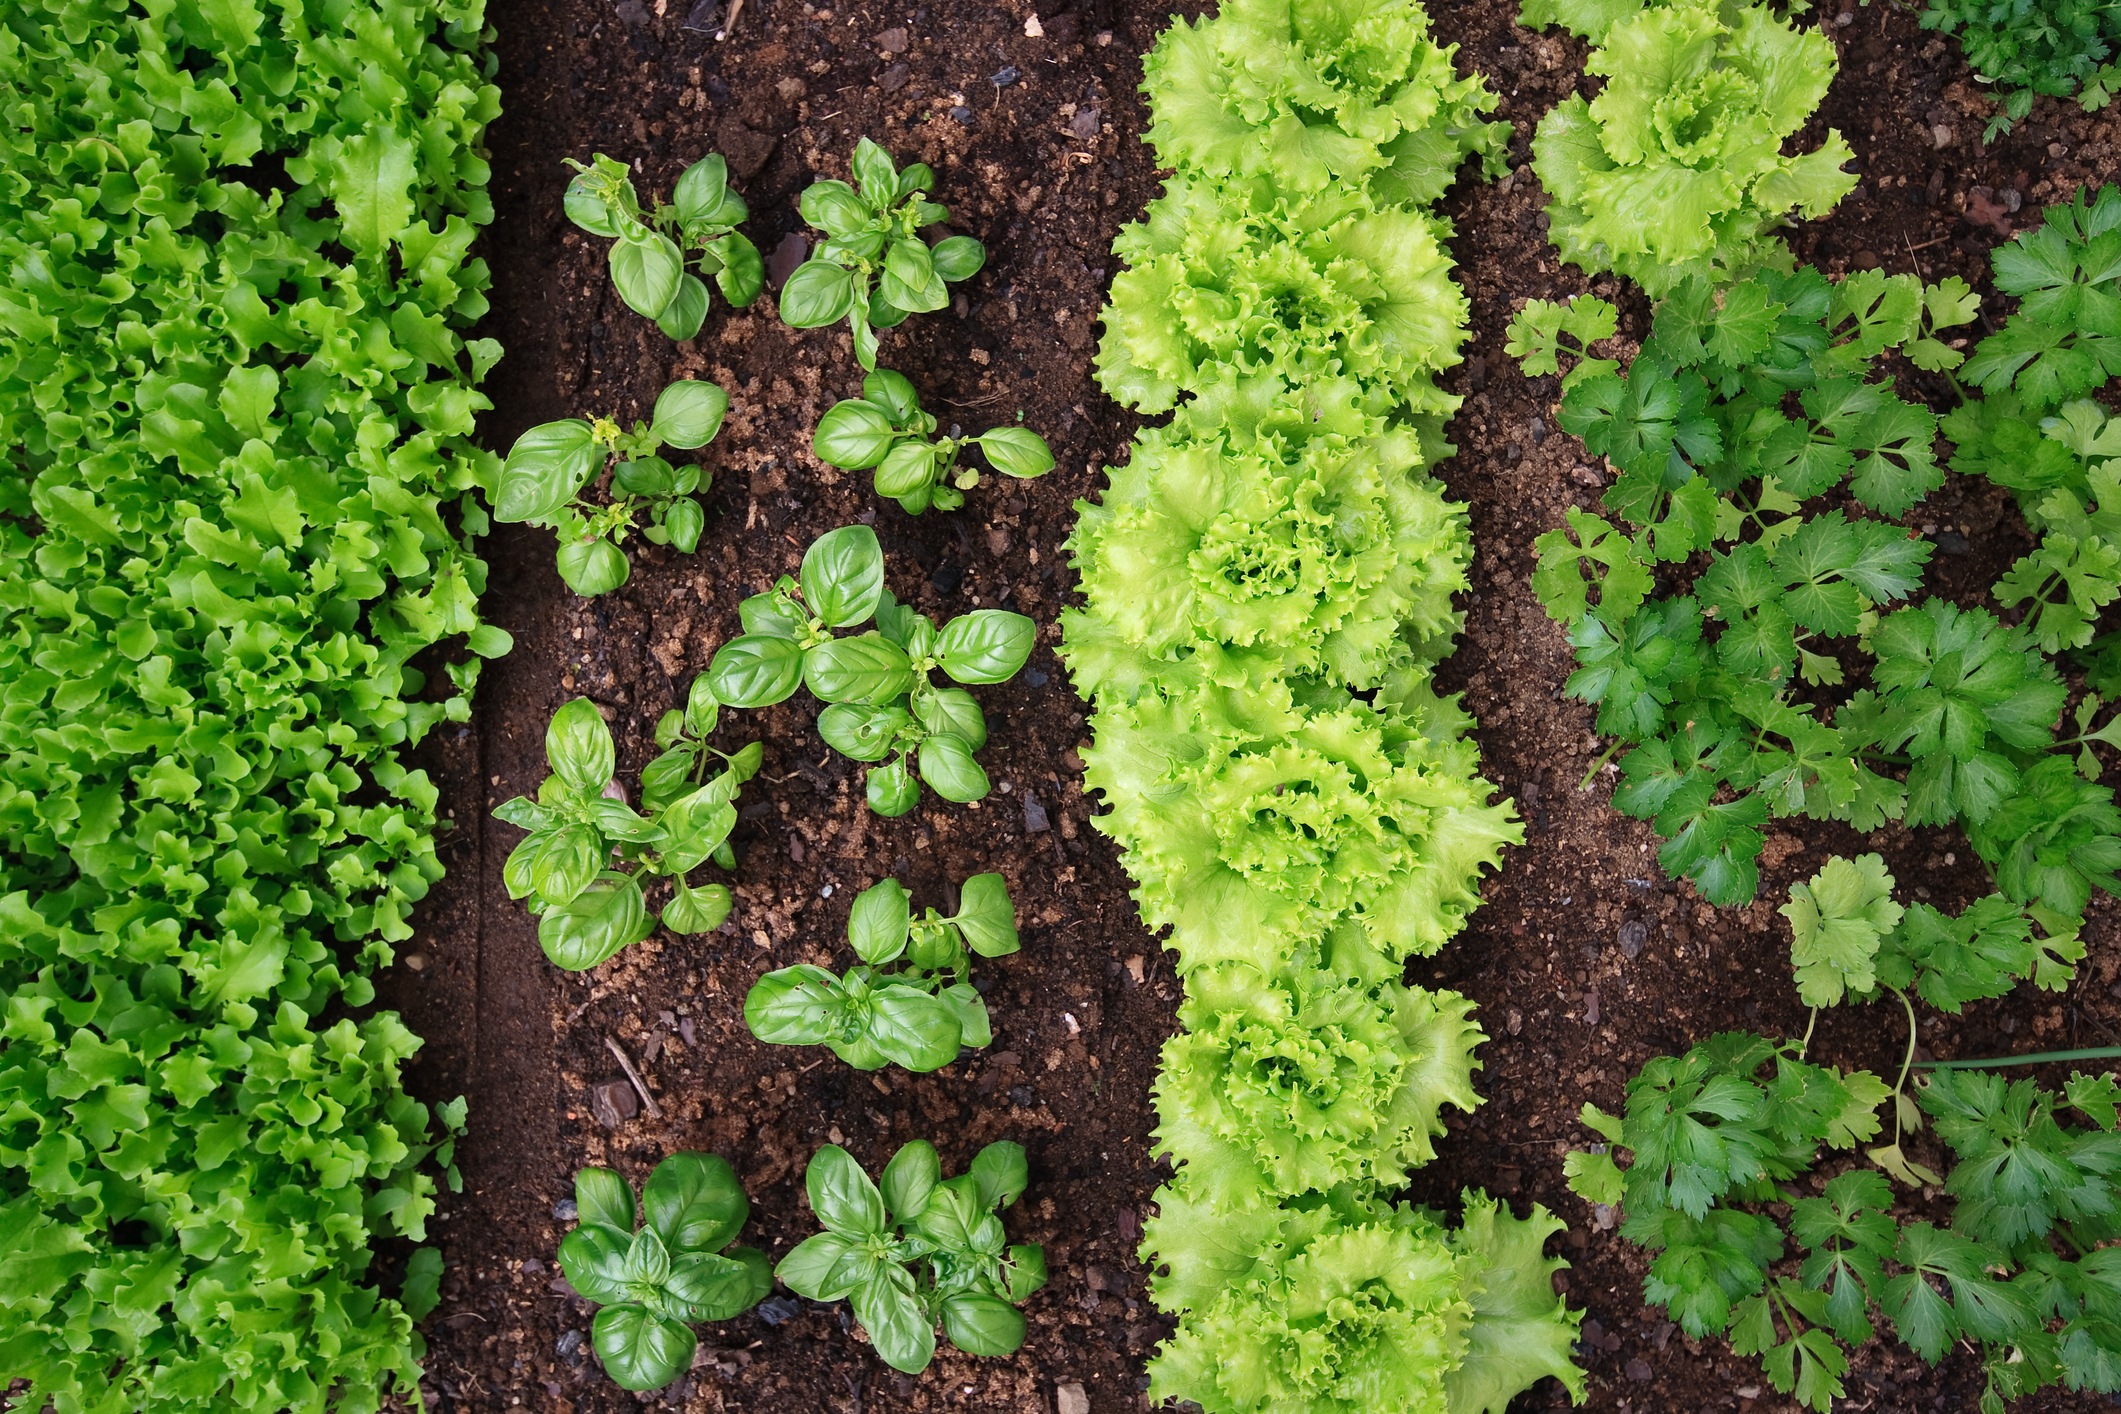 Rows of basil, coriander and lettuce